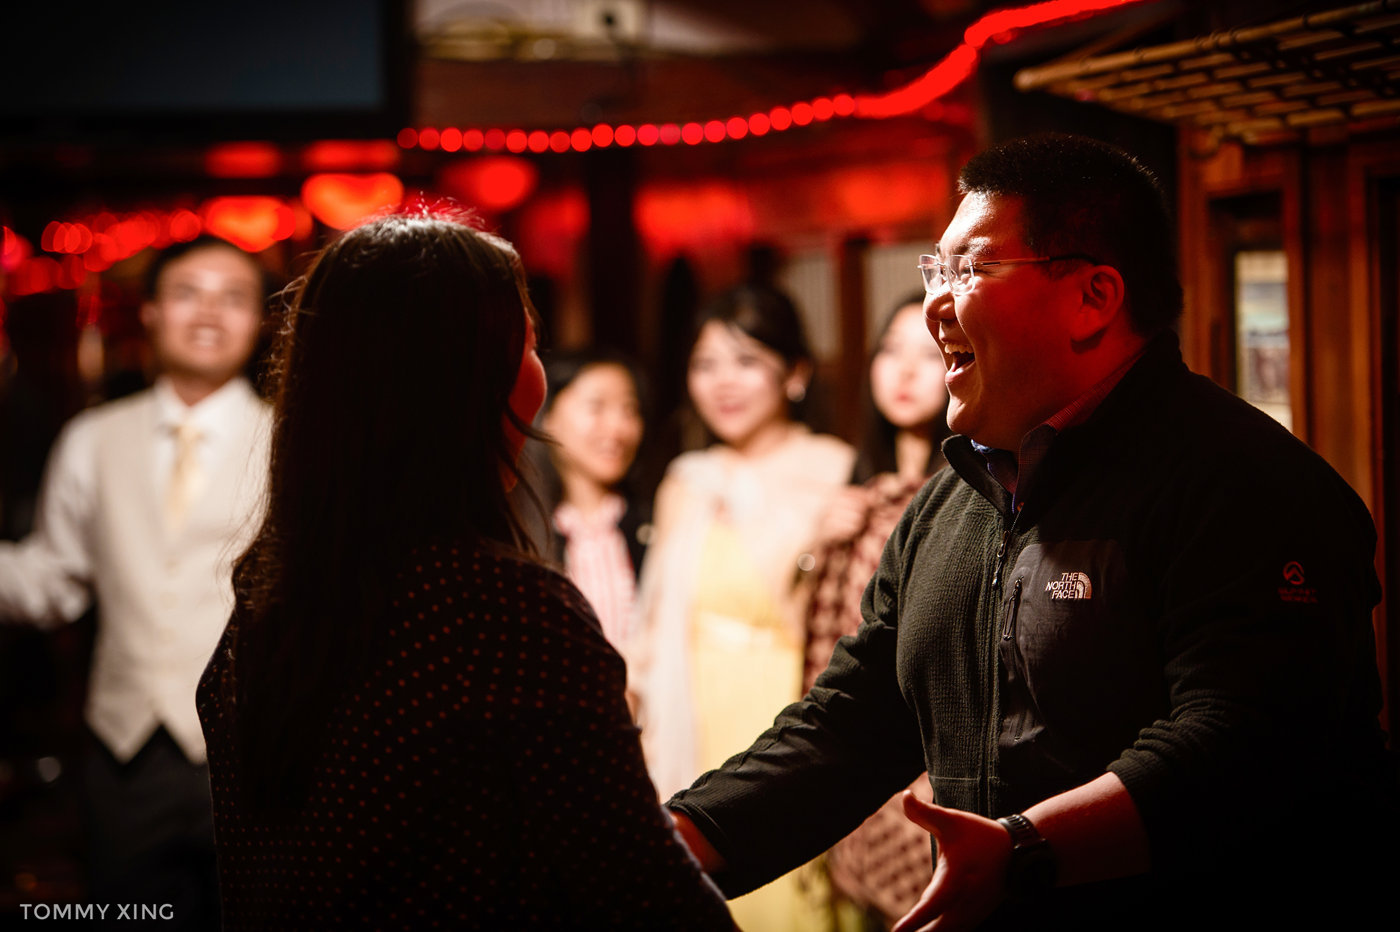 Seattle Wedding and pre wedding Los Angeles Tommy Xing Photography 西雅图洛杉矶旧金山婚礼婚纱照摄影师 214.jpg